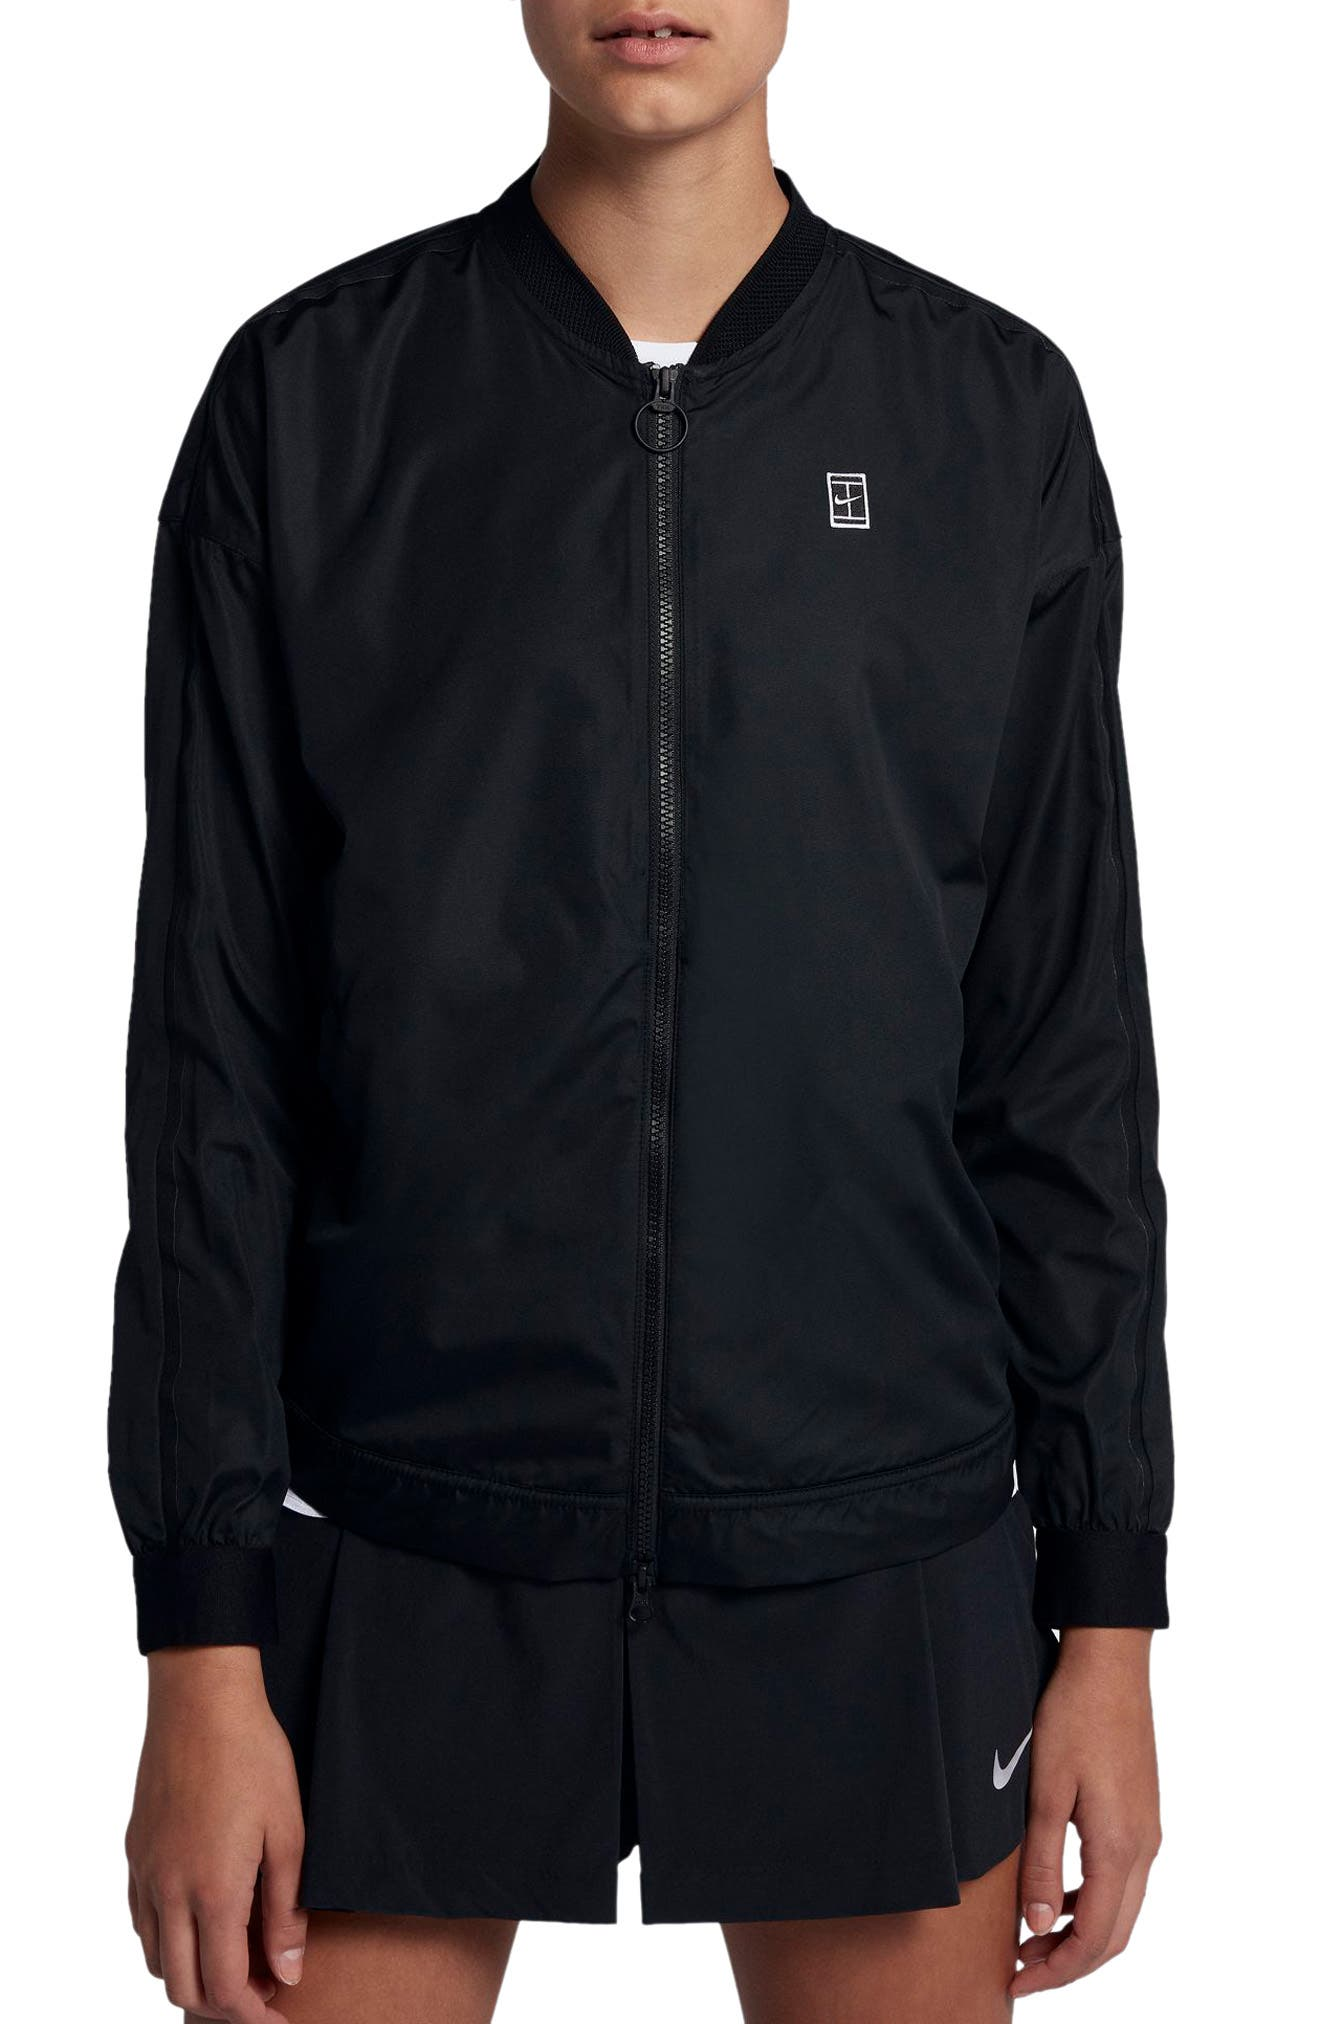 Court Water-Resistant Bomber Jacket,                         Main,                         color, Black/ Summit White/ White